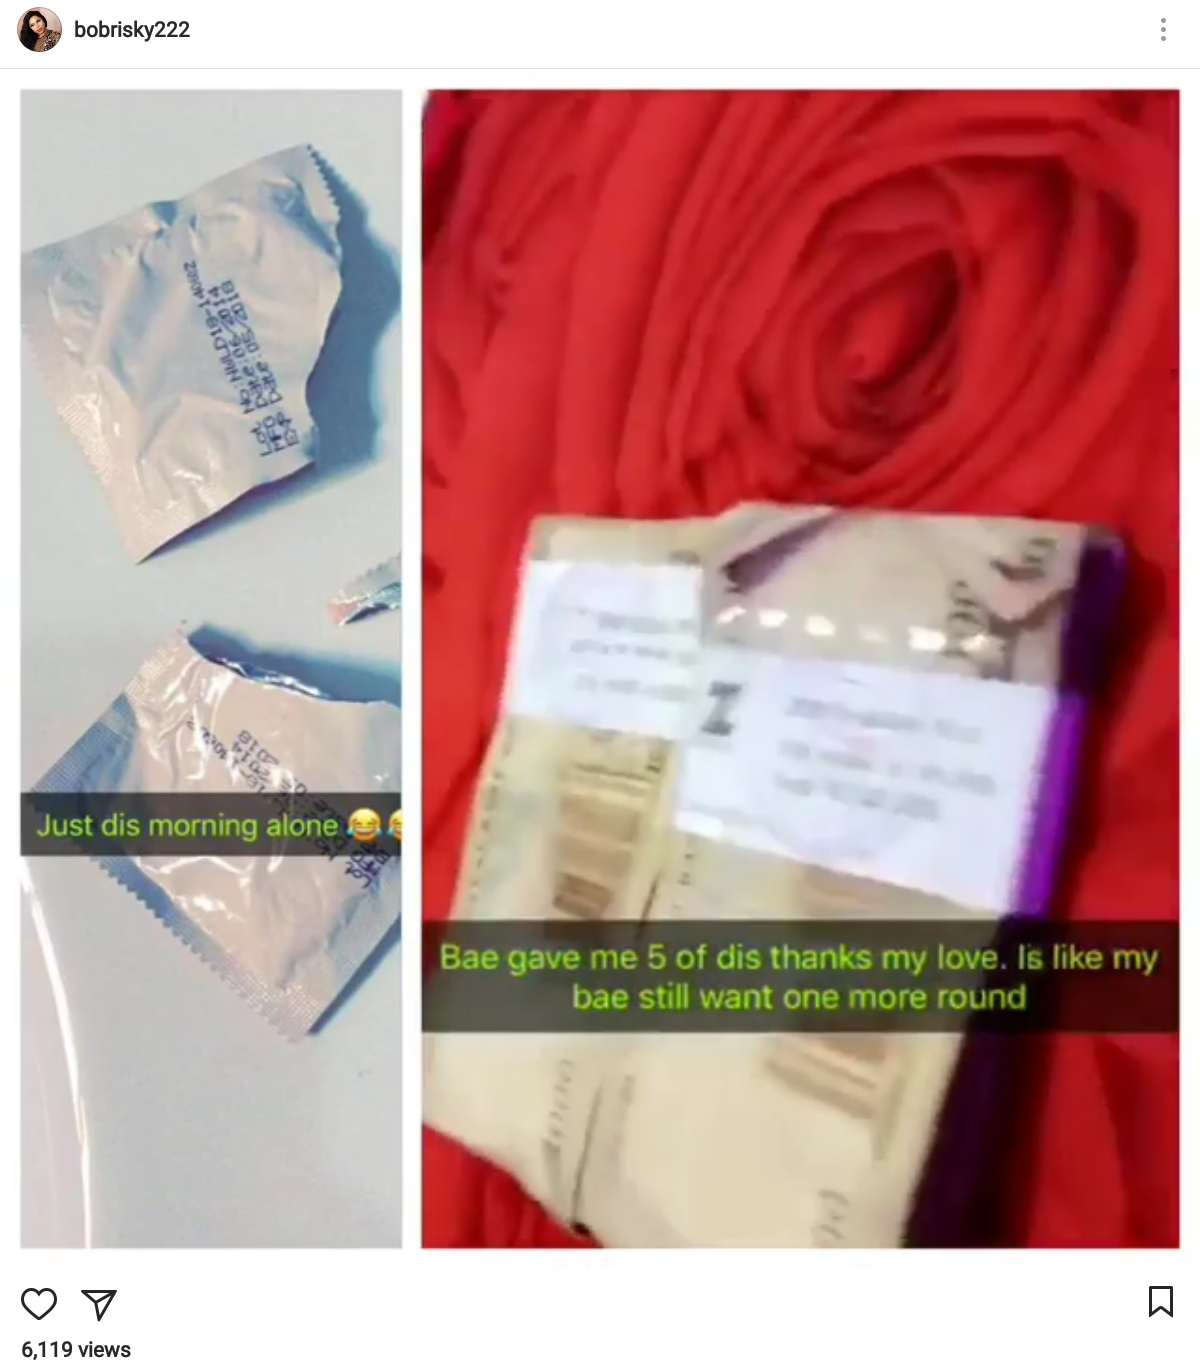 Bobrisky Shares Photos Of Two Torn Open CondomPackets With Wads Of Cash (1)